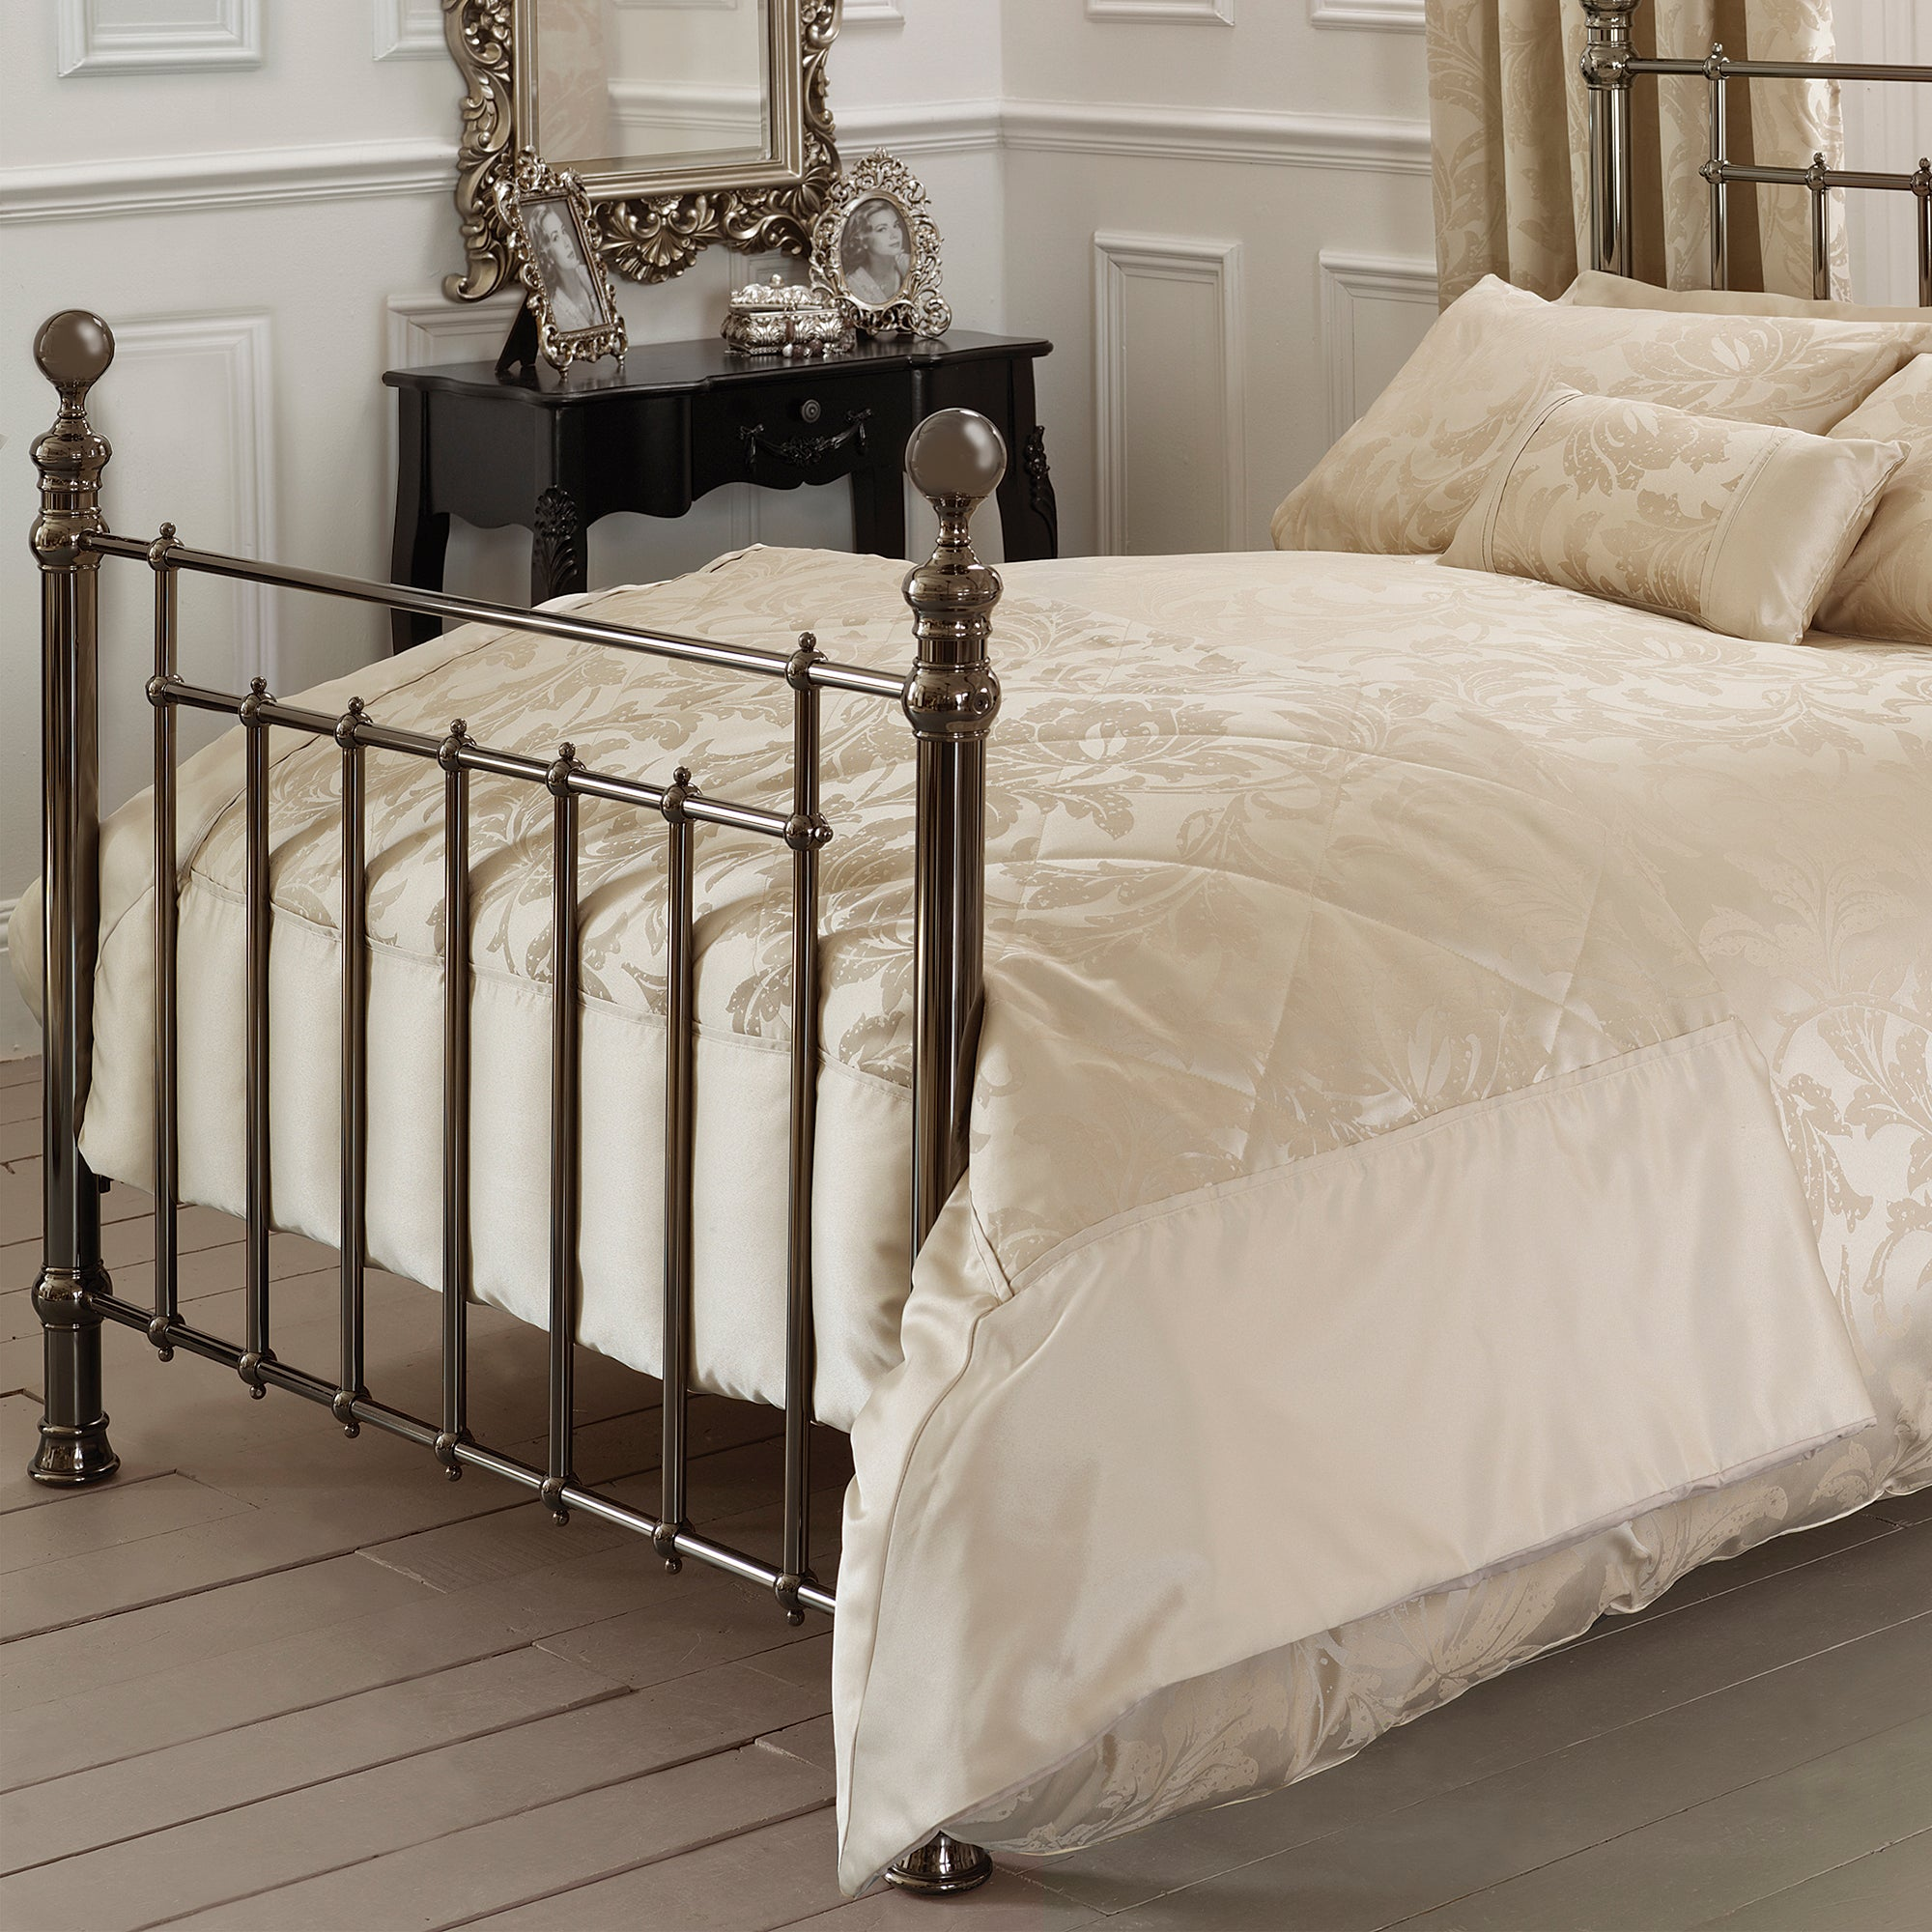 Gold Freya Collection Bedspread